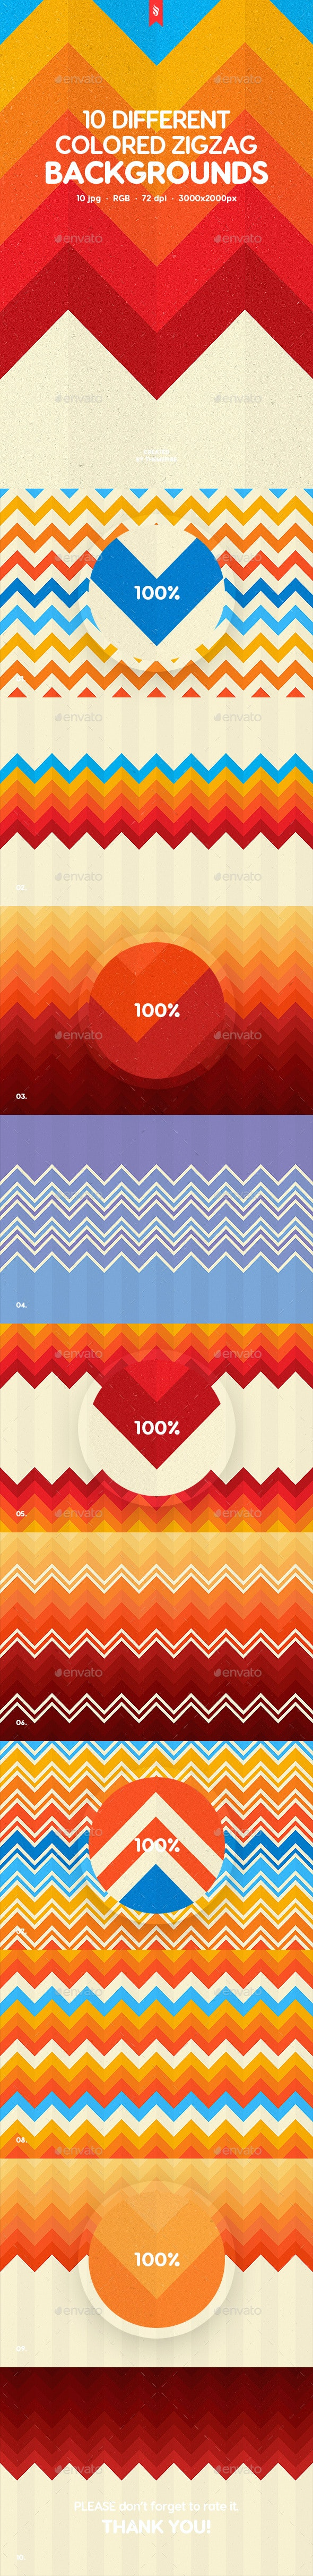 Abstract Flat Multicolored Zigzag Backgrounds